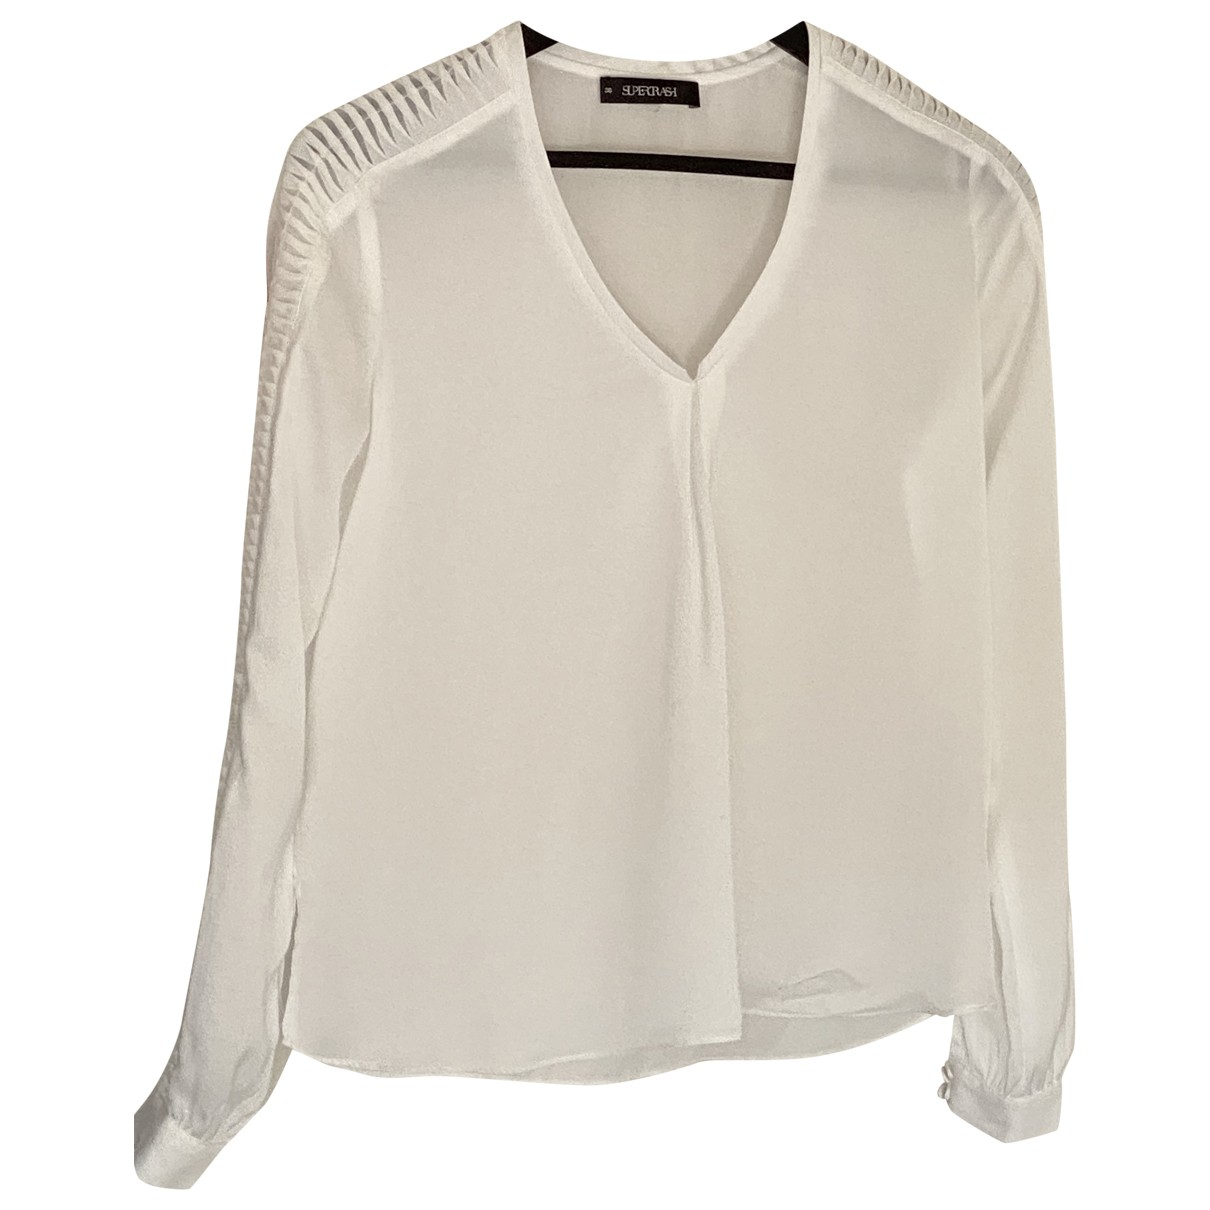 Supertrash \N White  top for Women 36 FR